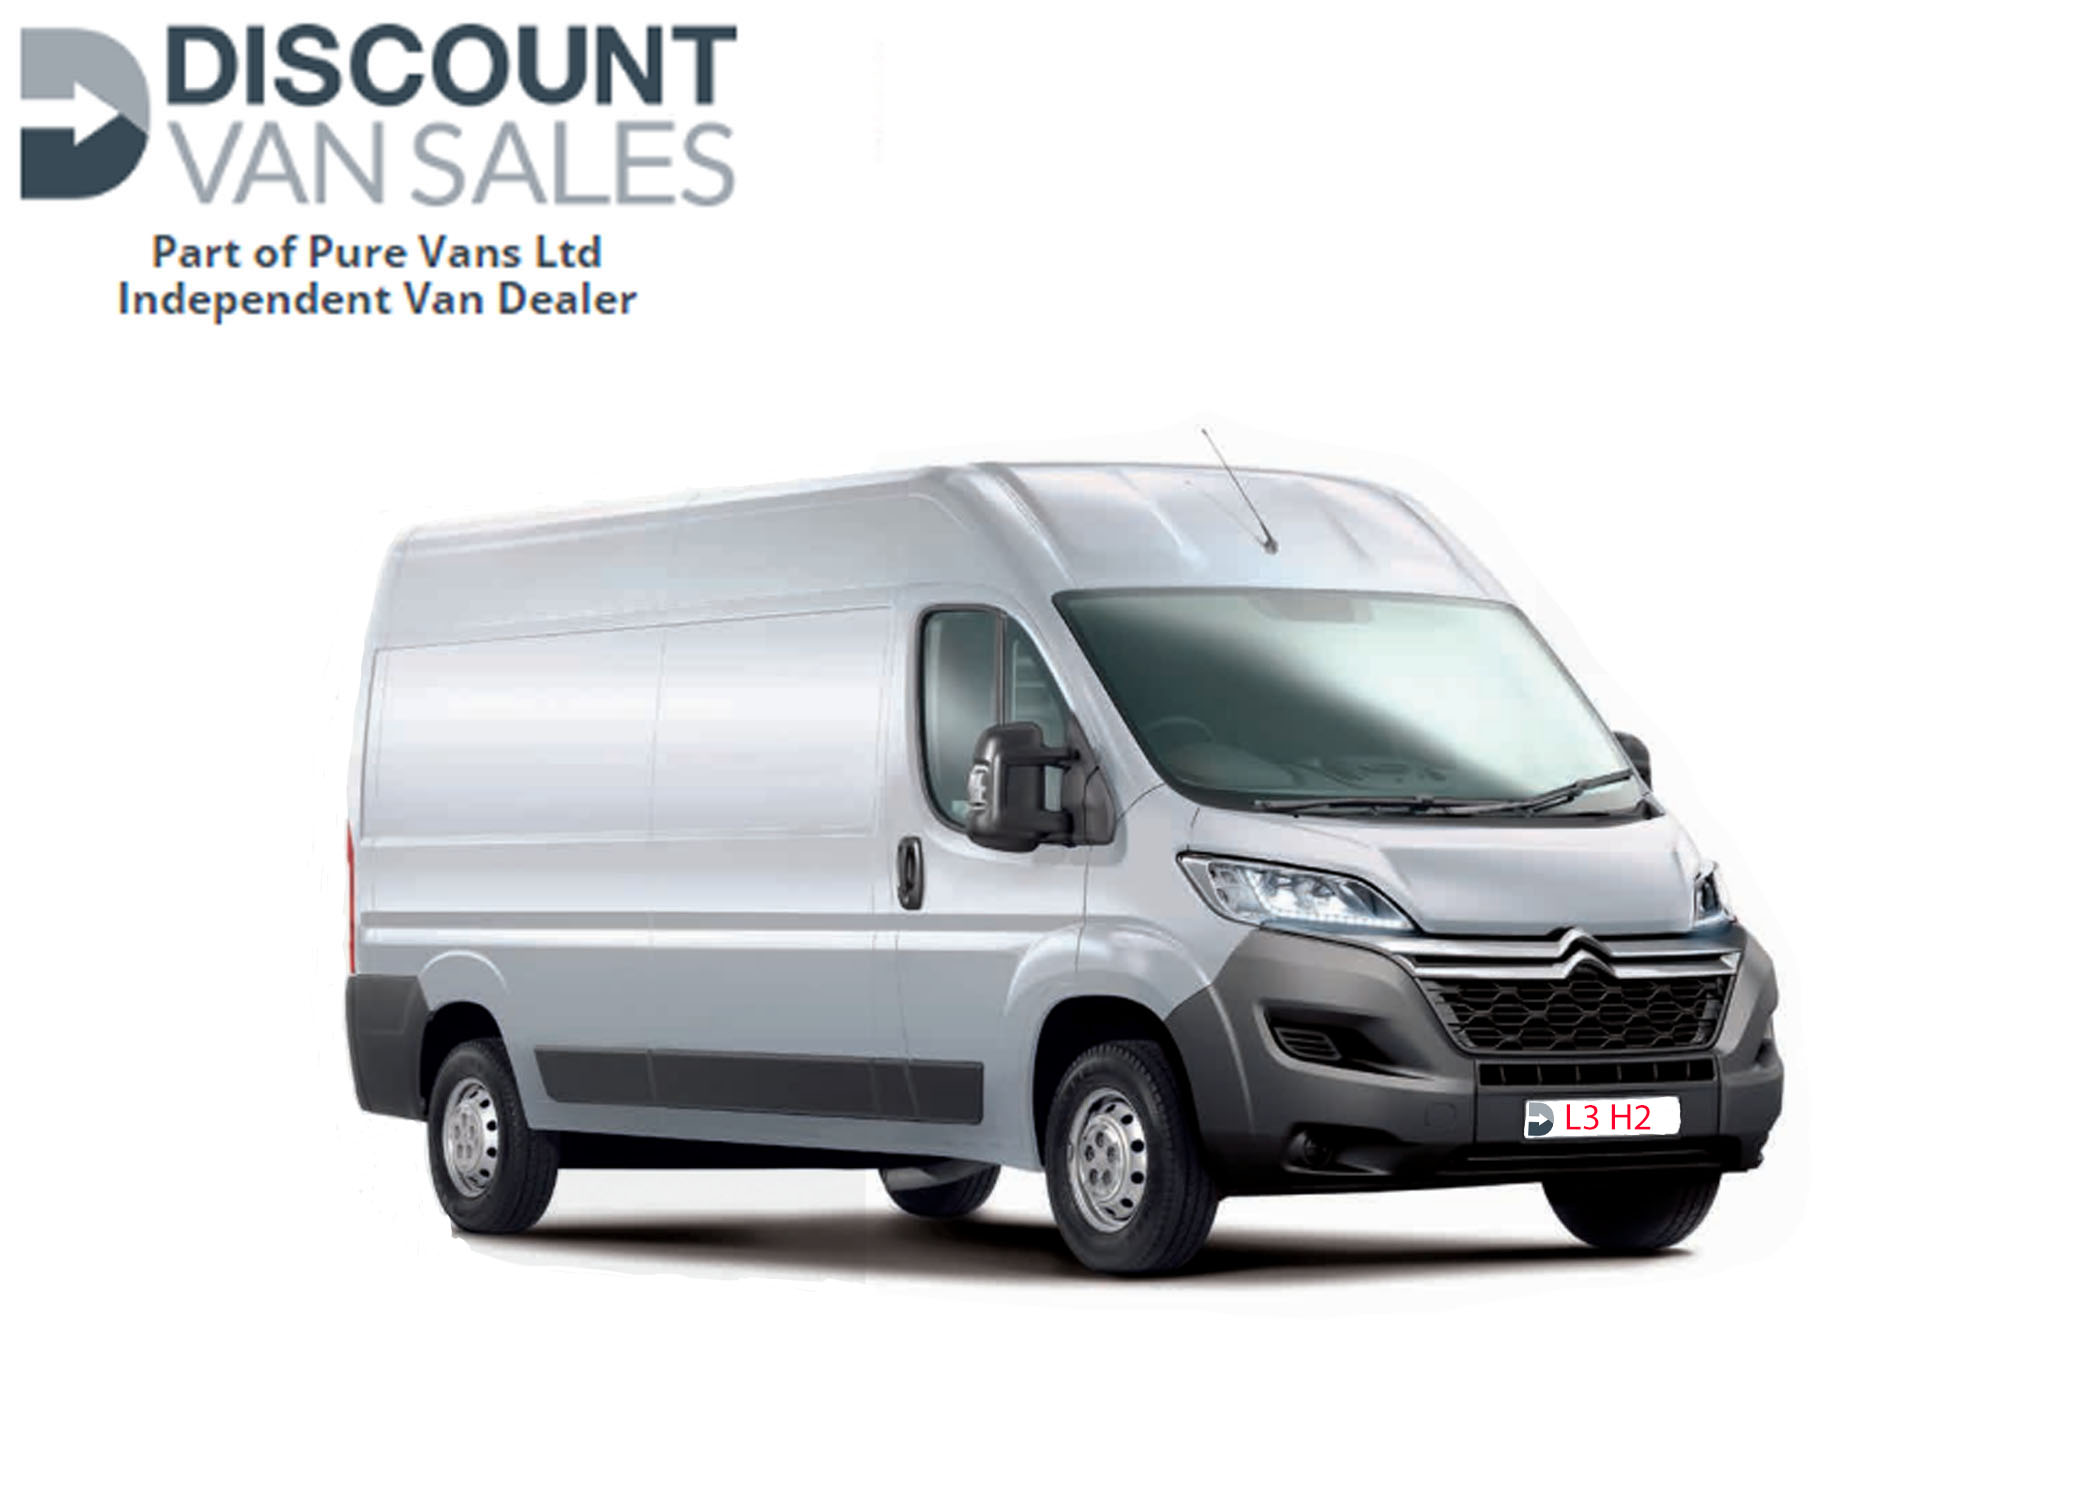 CITROEN RELAY 35 2.0 BLUEHDI 130 L3 H2 ENTERPRISE side view.jpg